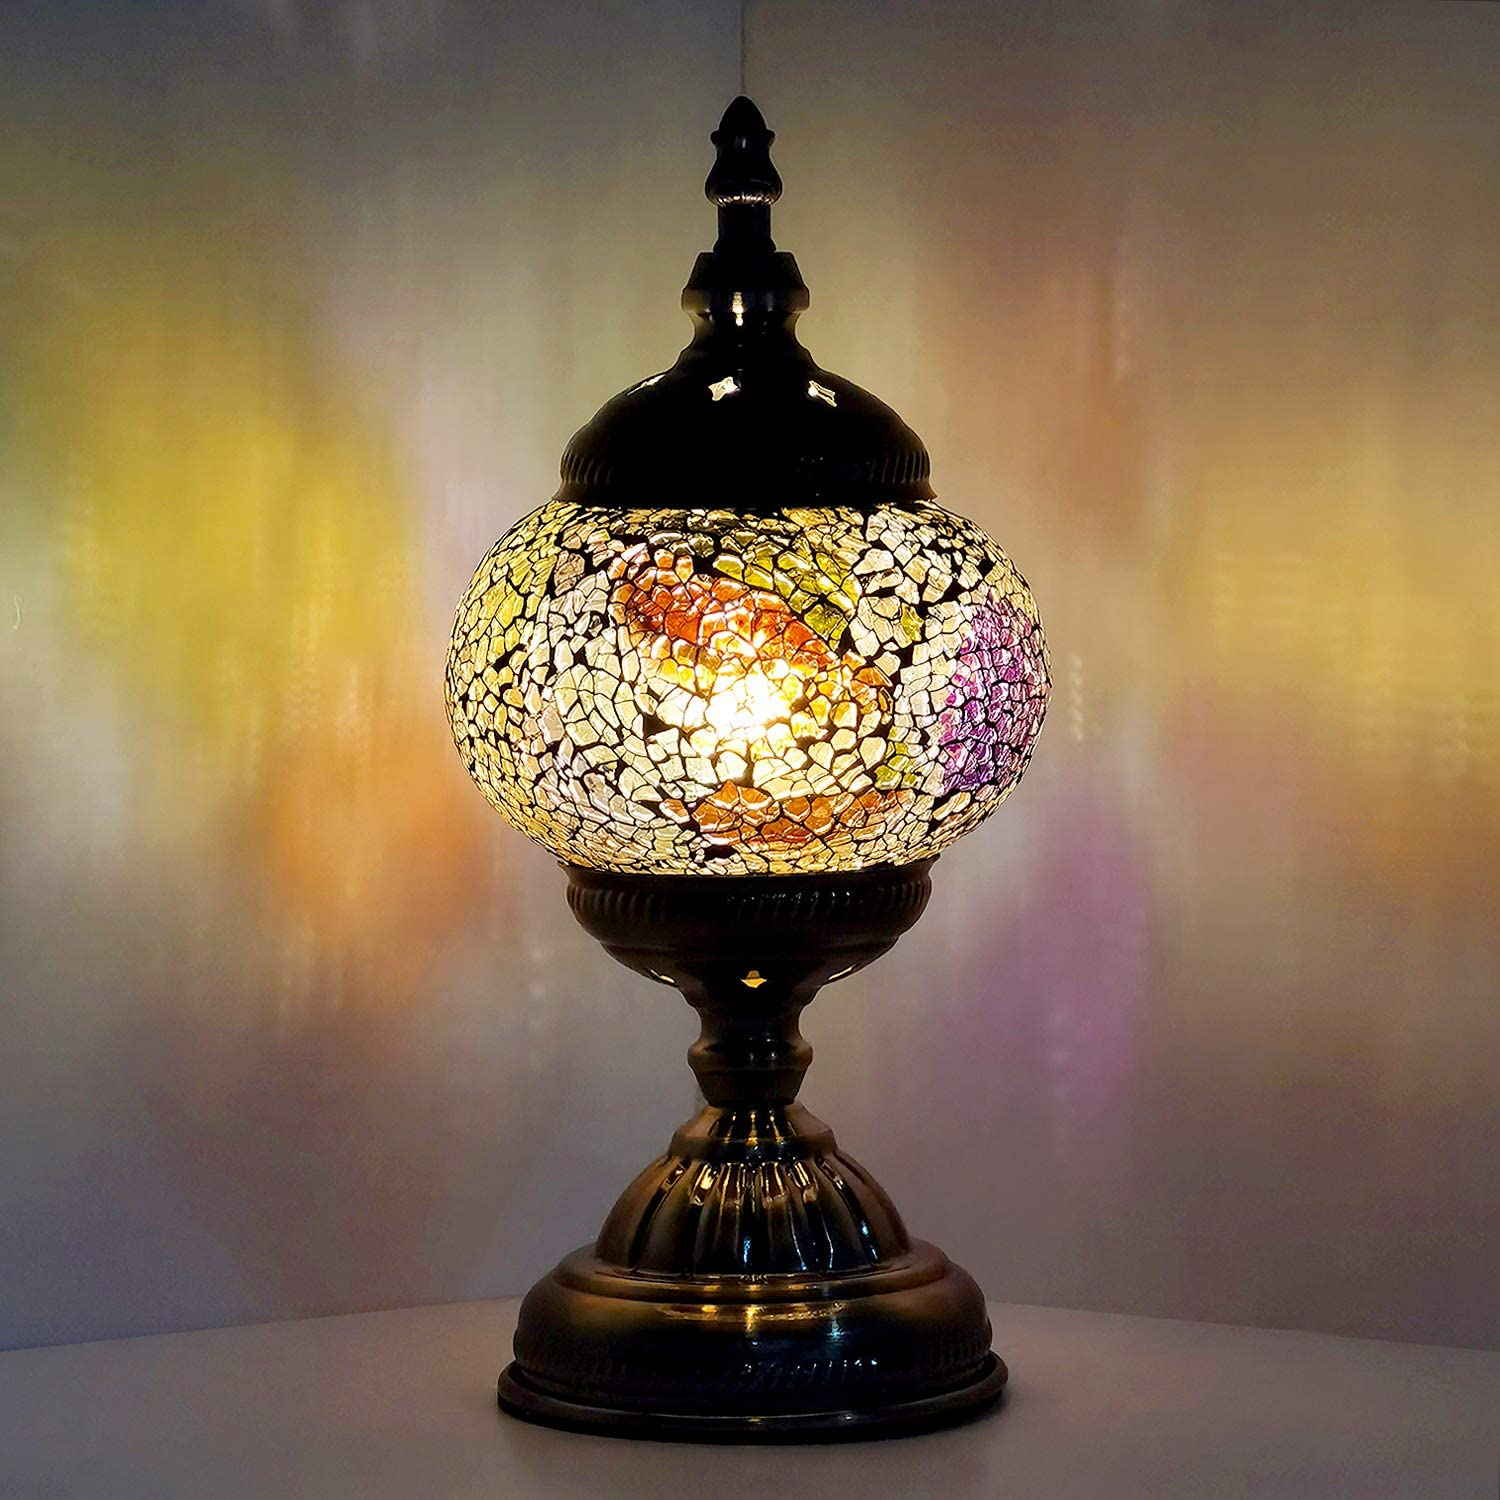 Marrakech Turkish Moroccan Handcrafted Mosaic Table Desk Bedside Lamp Vintage Night Lamp Tiffany Style Stained Glass Table Lamp for Small Home Decor (8)